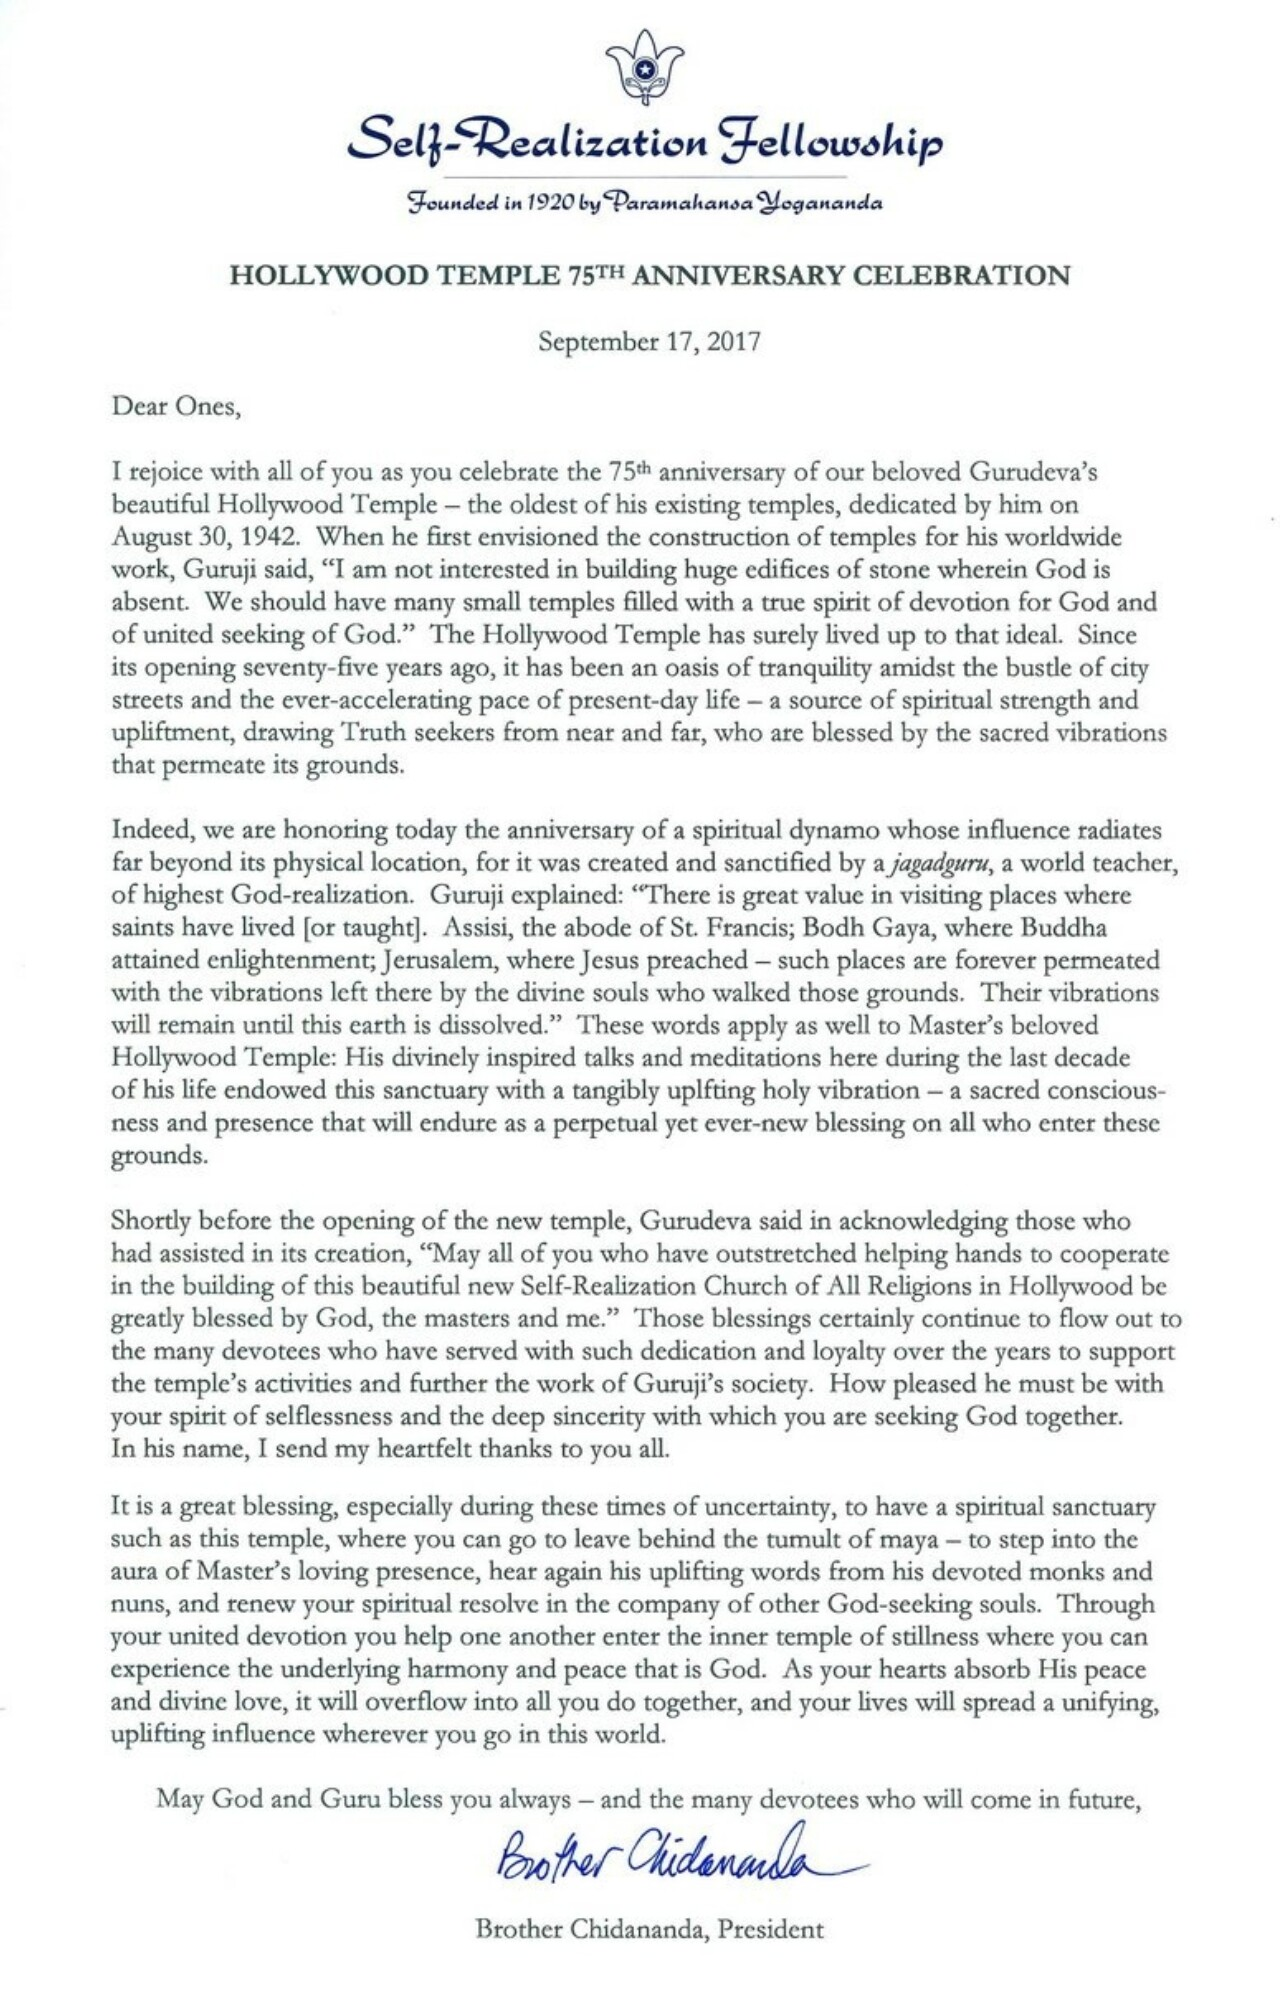 Hollywood Temple 75th Anniversary Letter from Brother Chidananda